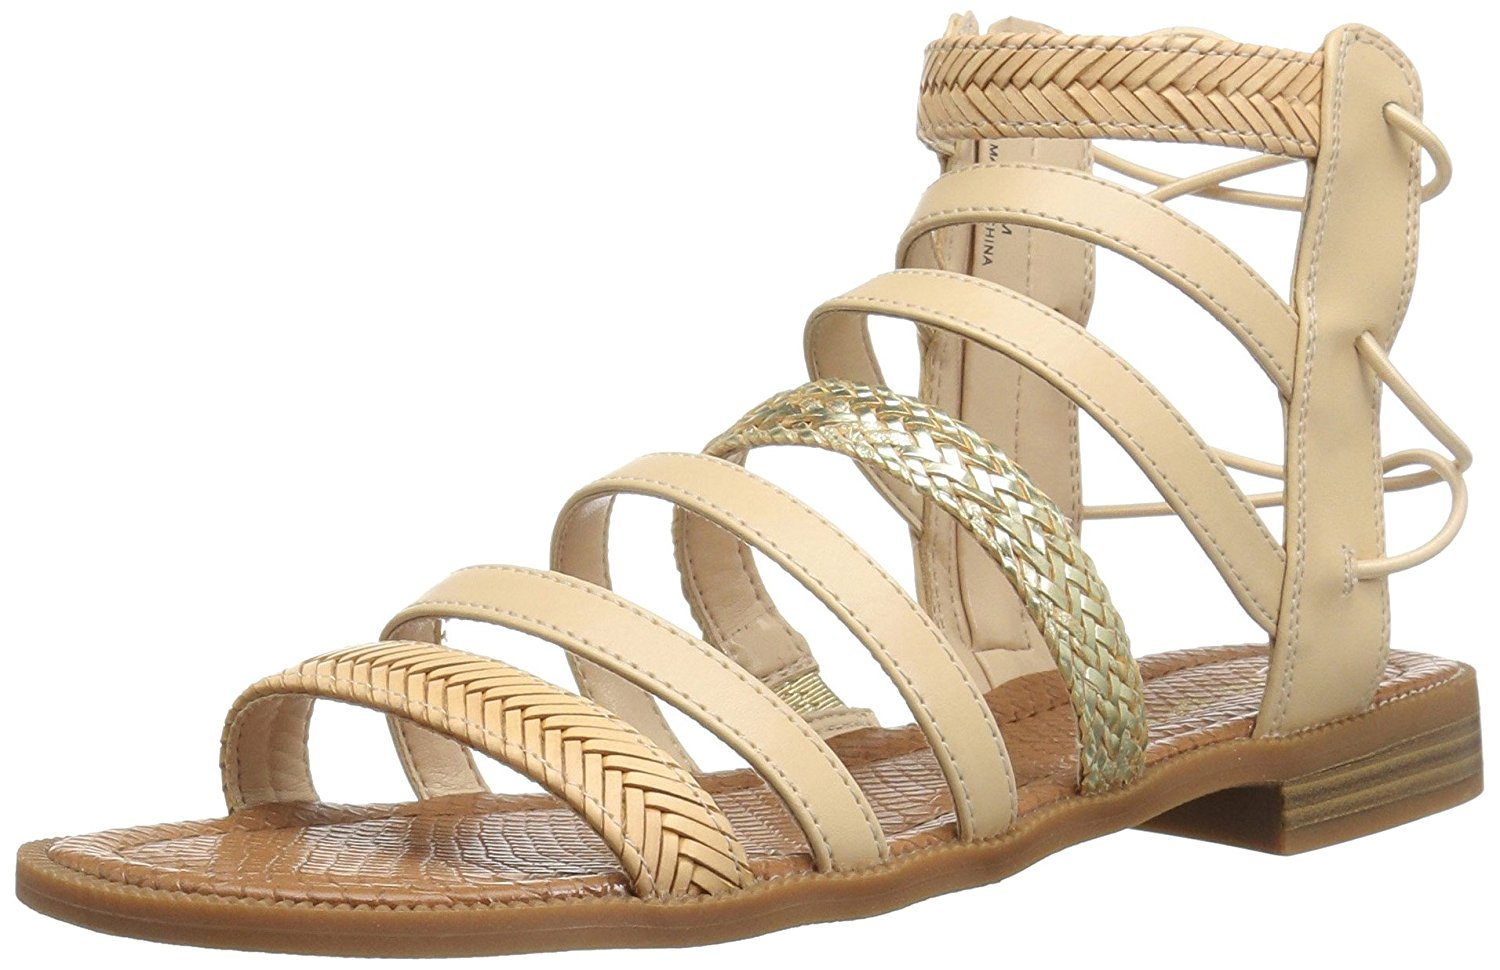 631a3d7055c Nine West Womens Xema Open Toe Casual Strappy Sandals